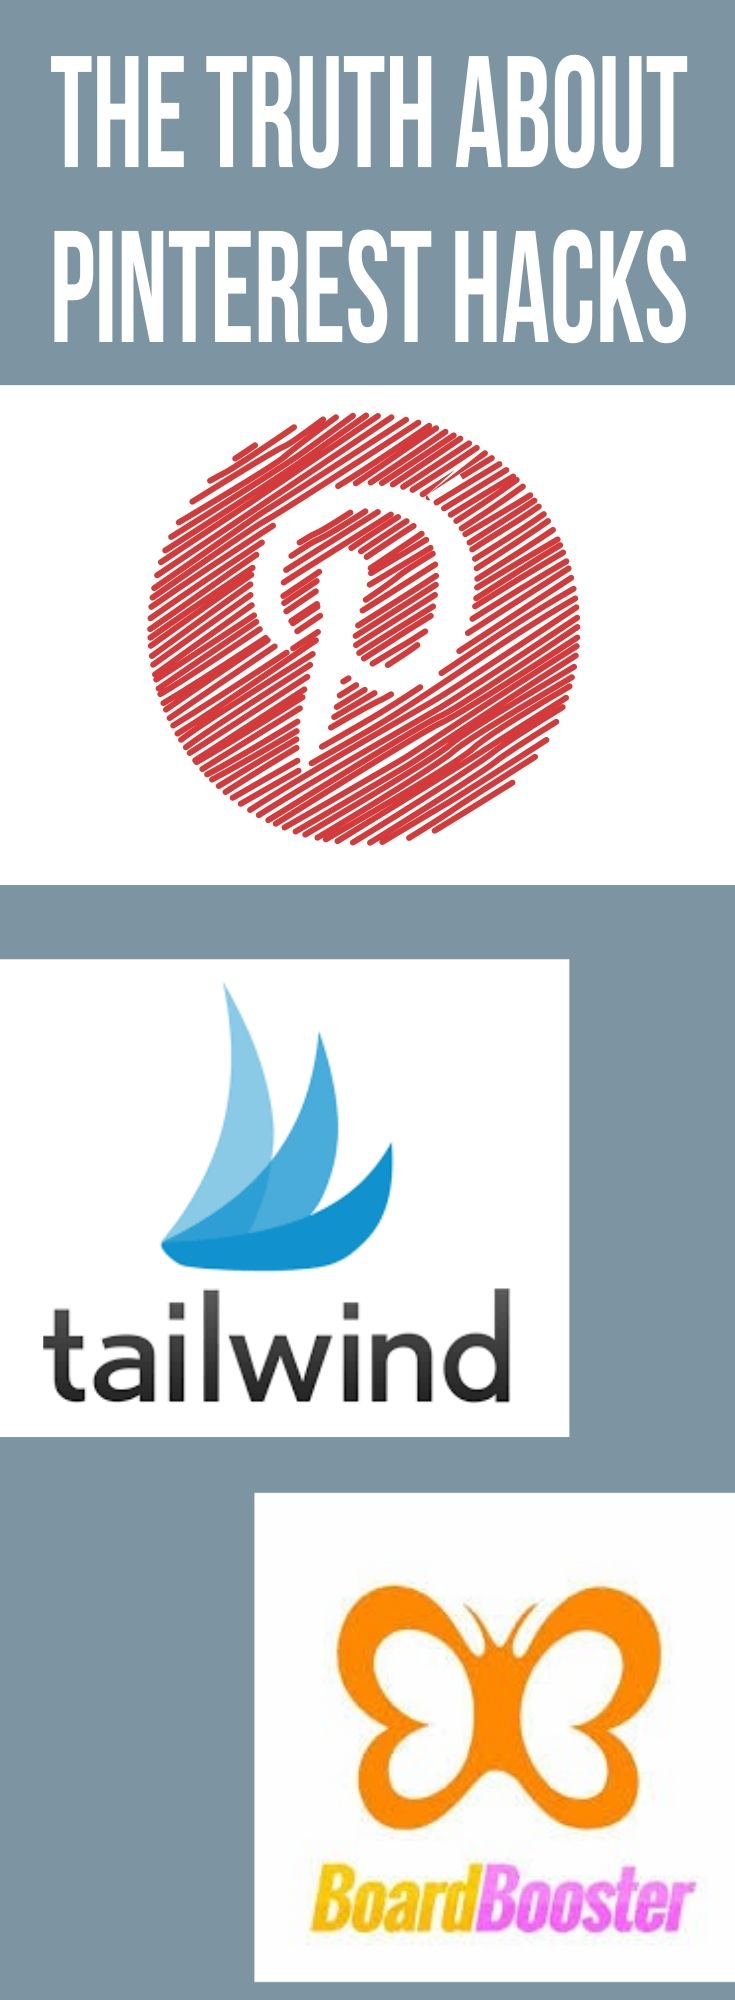 The Truth About Tailwind, BoardBooster And Pinterest Hacks - My experience of manual pinning and crazy traffic hikes.